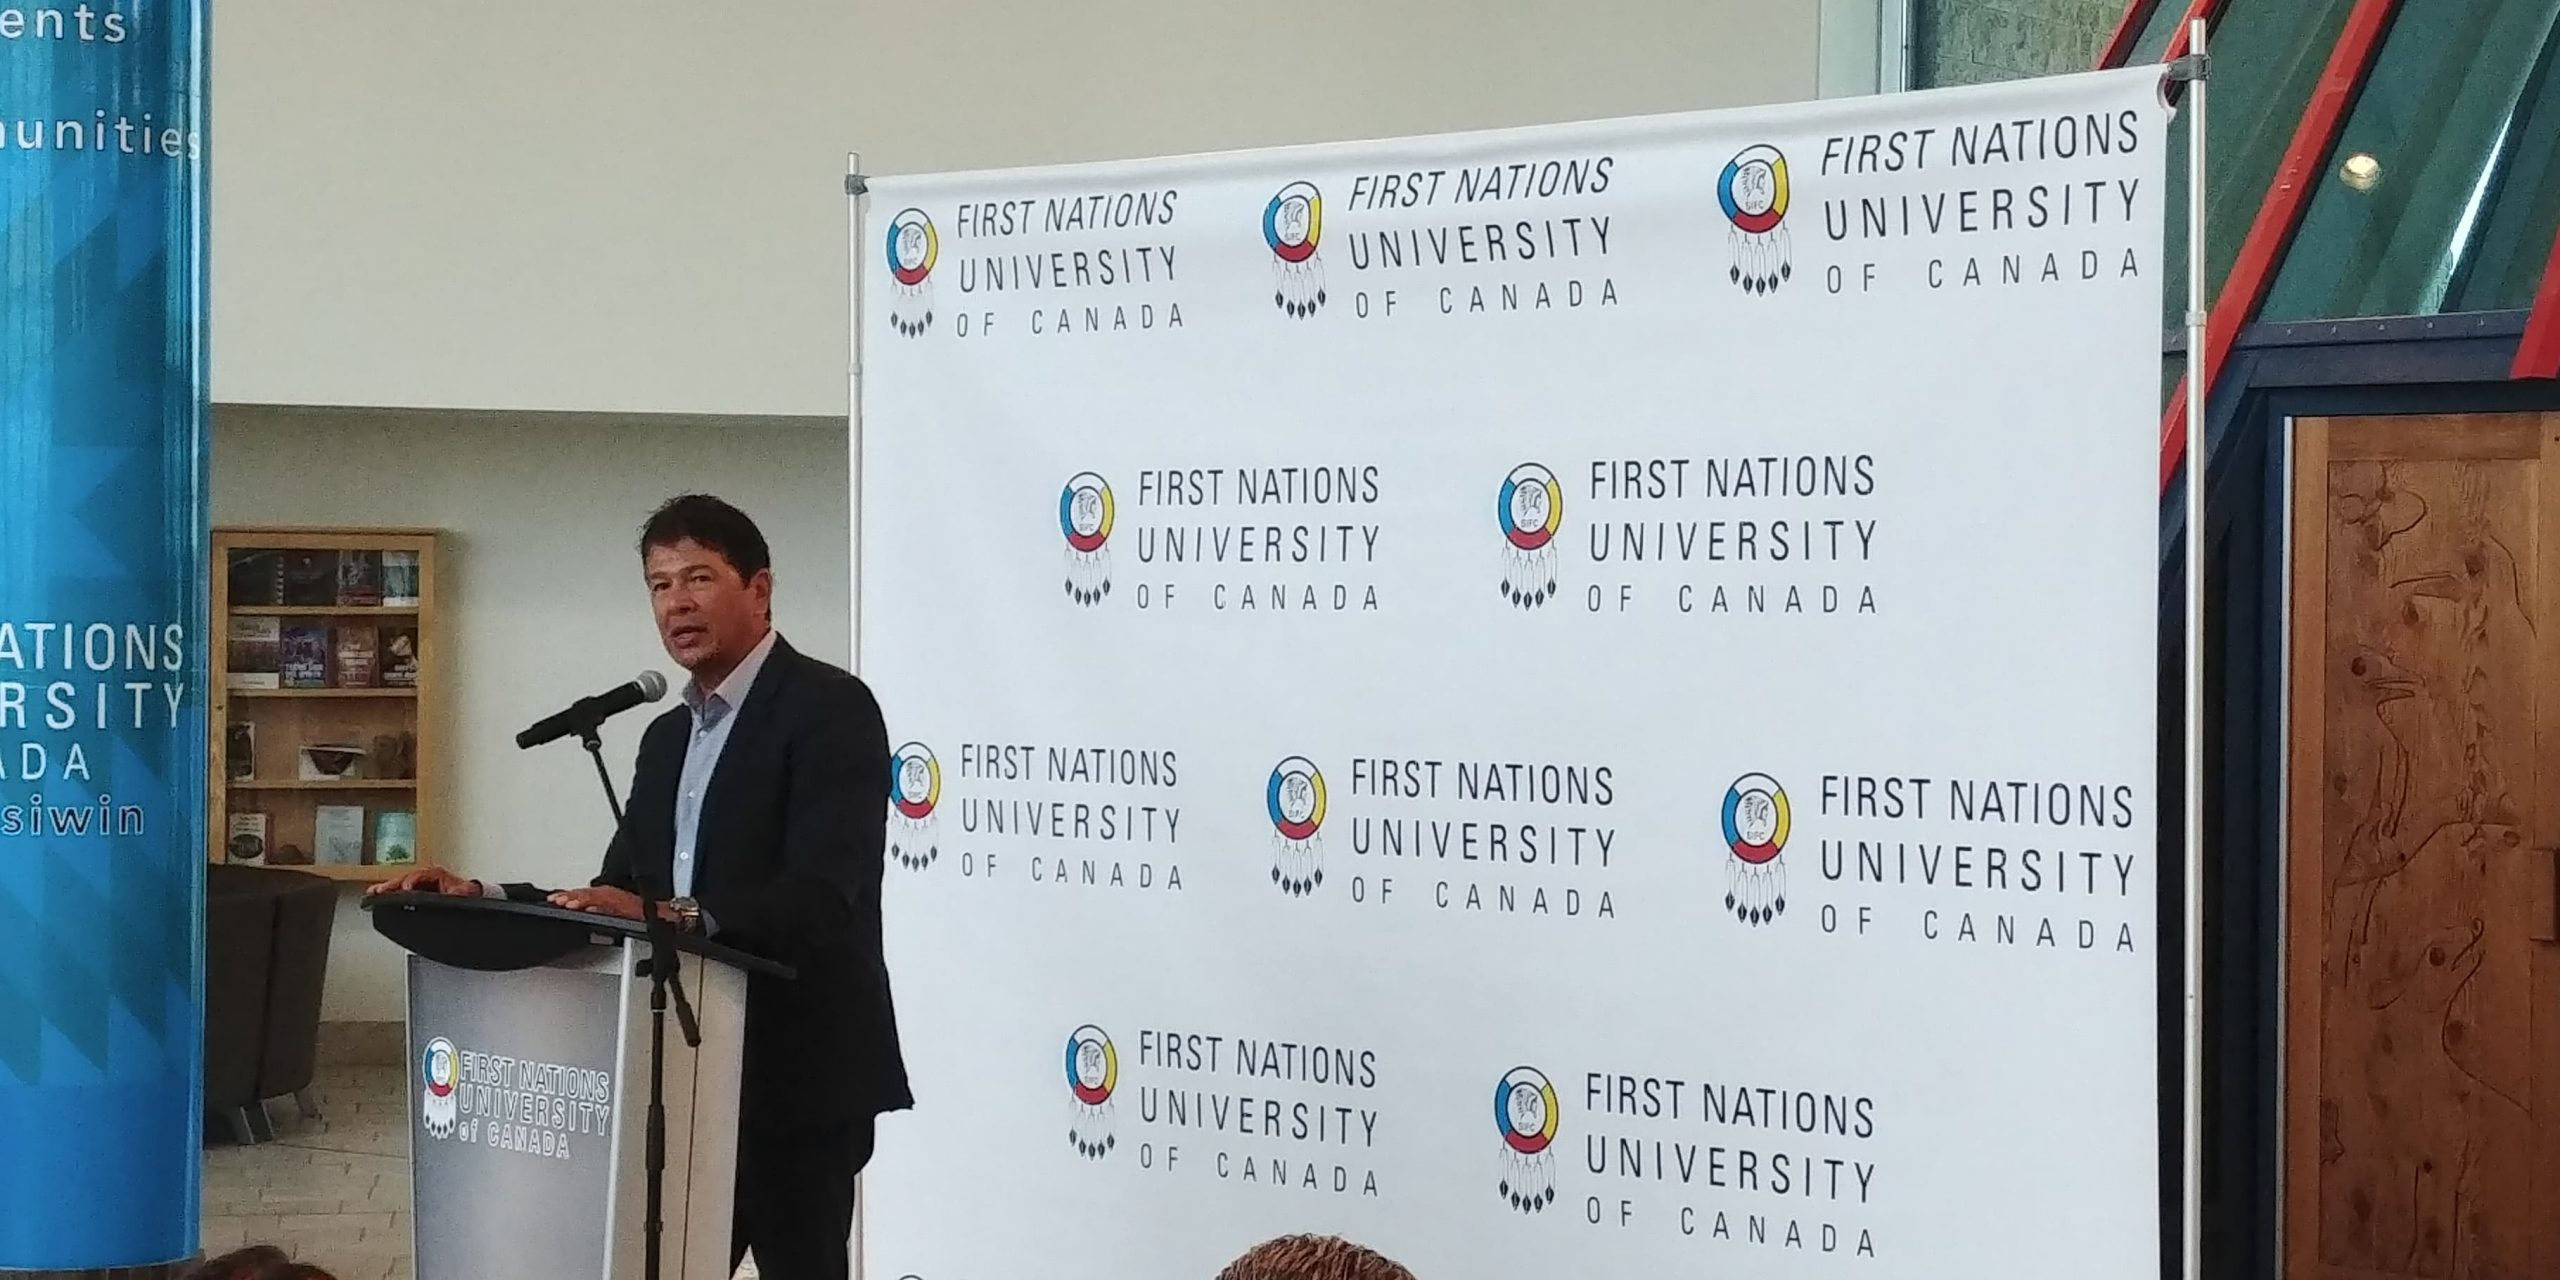 Former NHL coach Ted Nolan donating $75, 000 to First Nations University of Canada